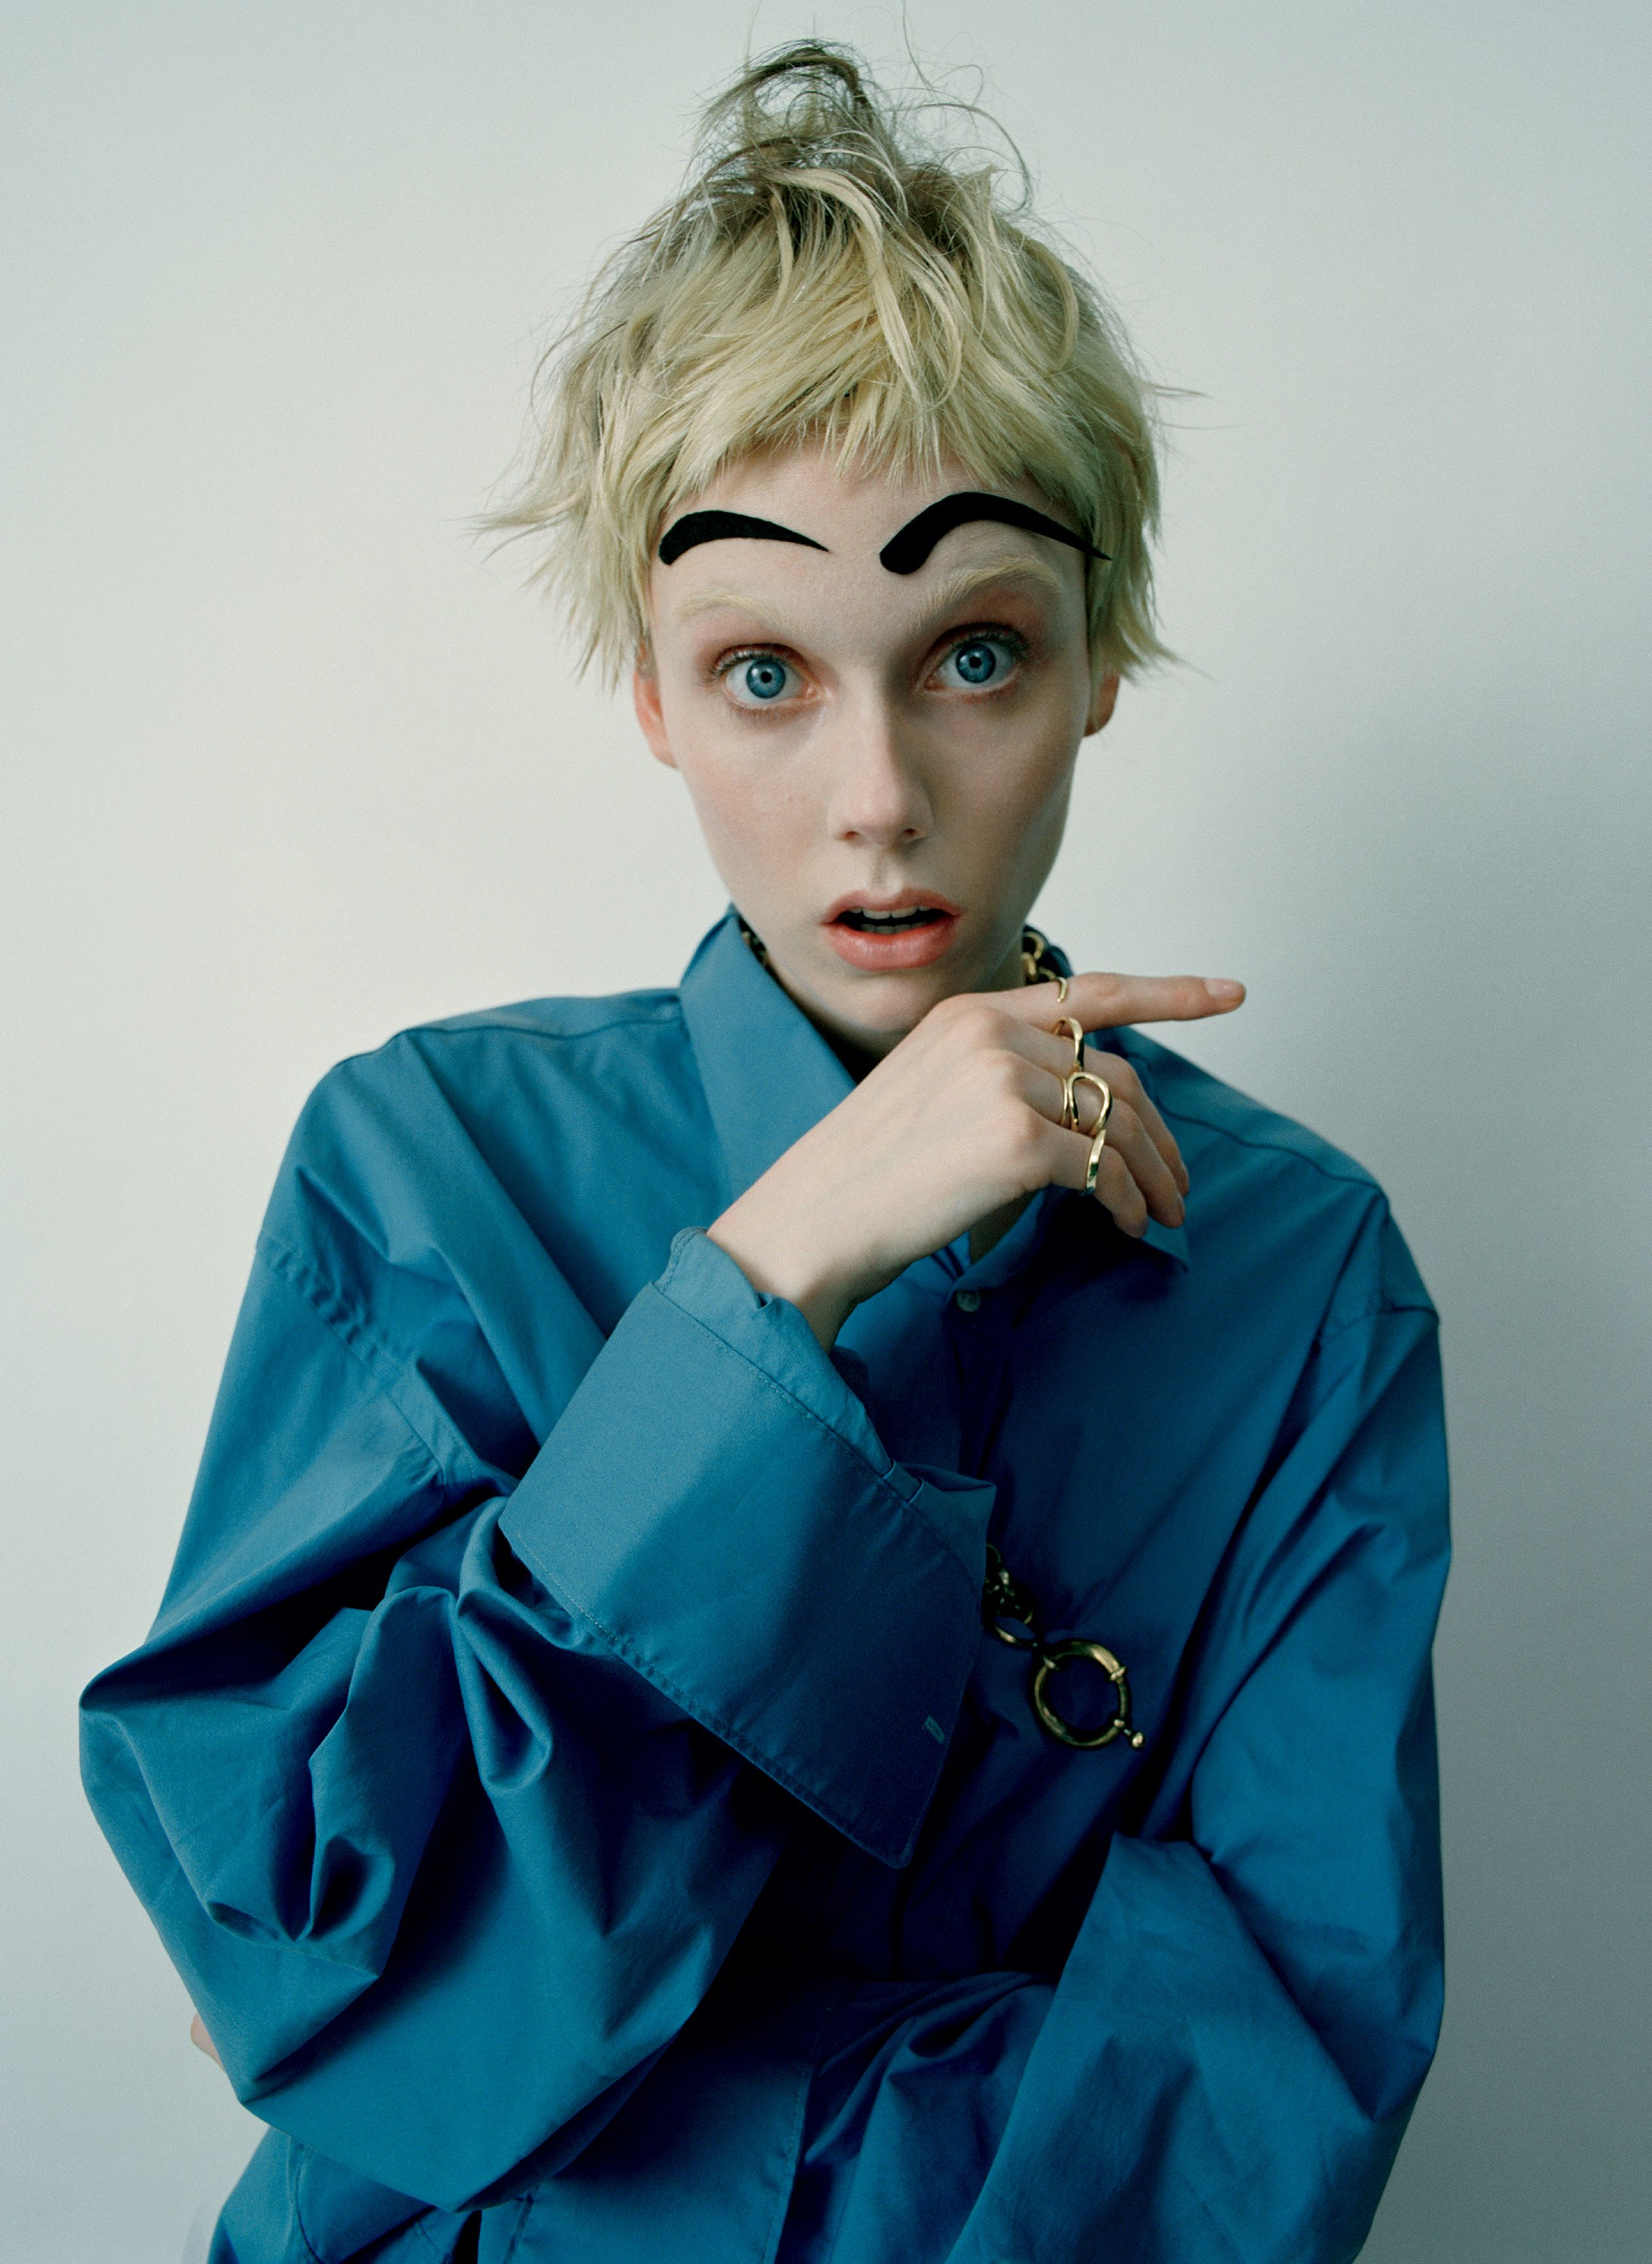 Brows by Tim Walker and Phyllis Posnick